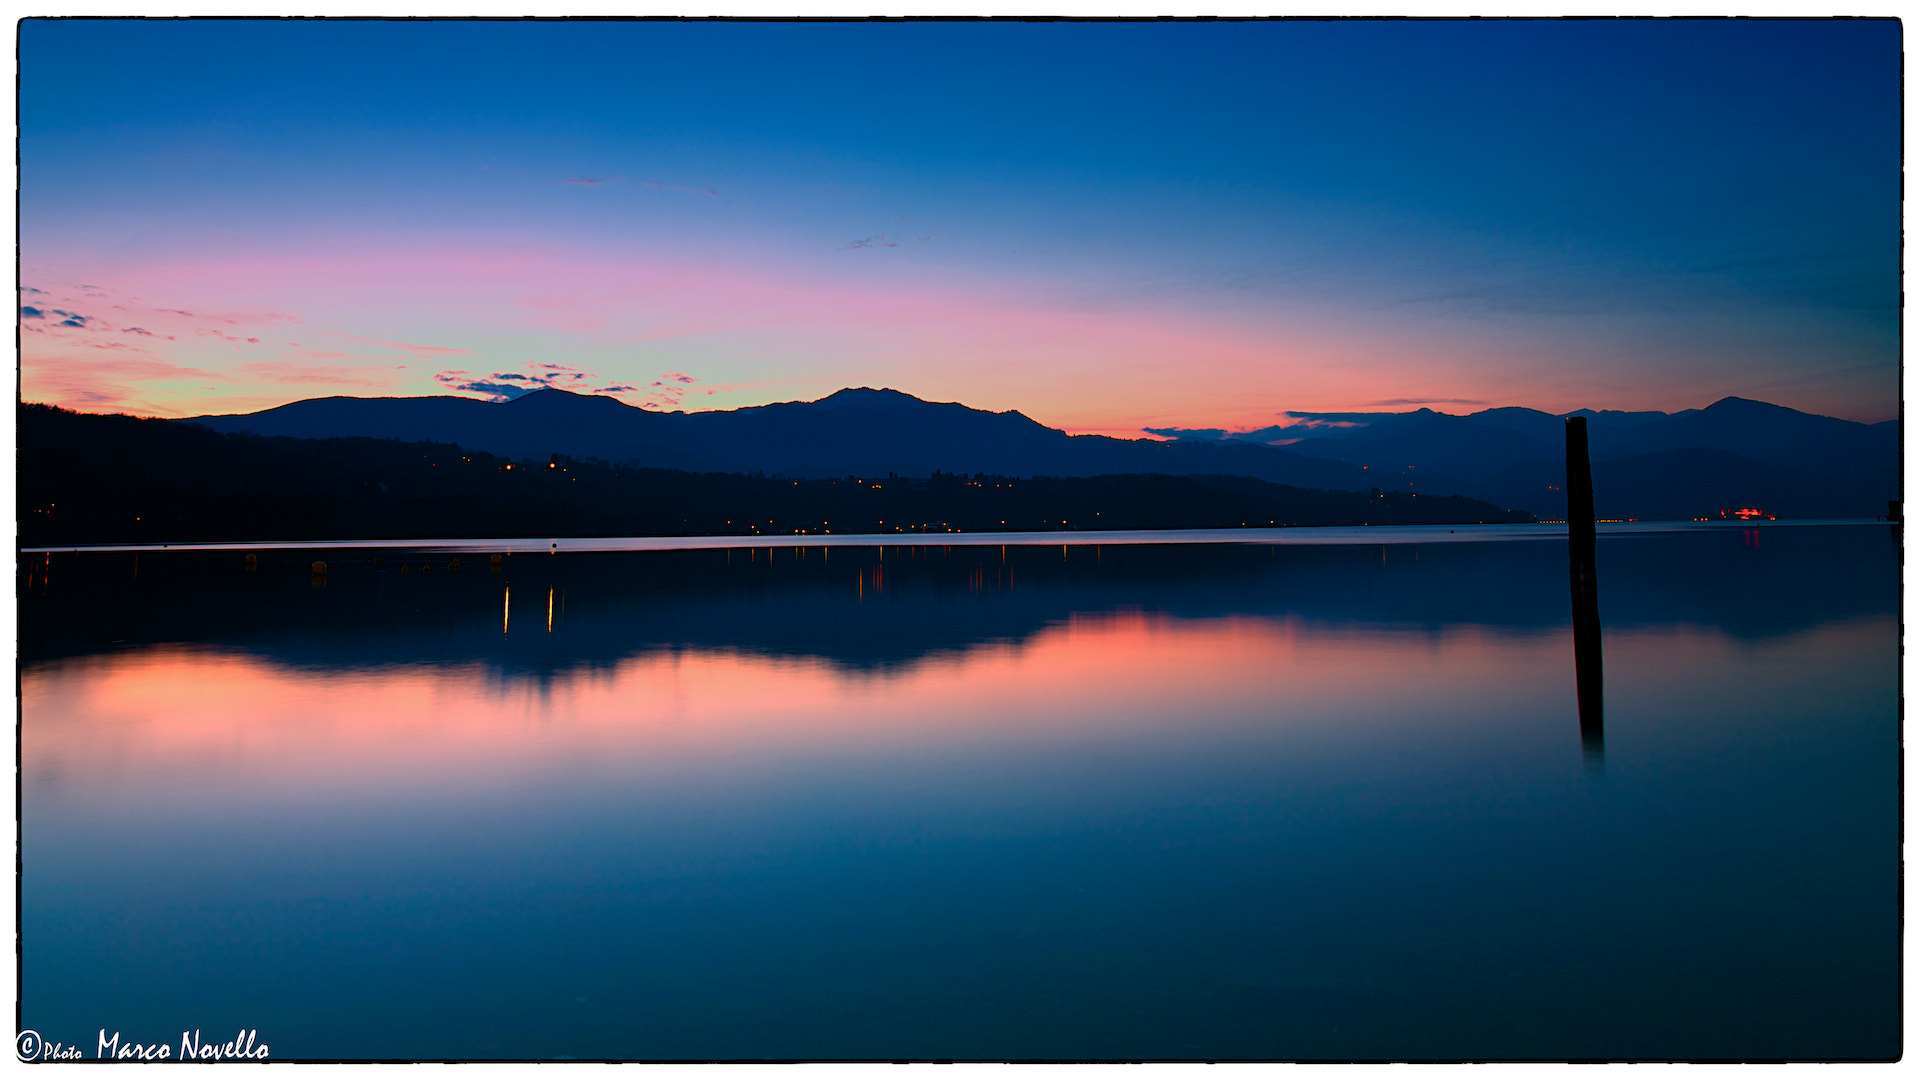 Photograph The blue hour by Marco Novello on 500px